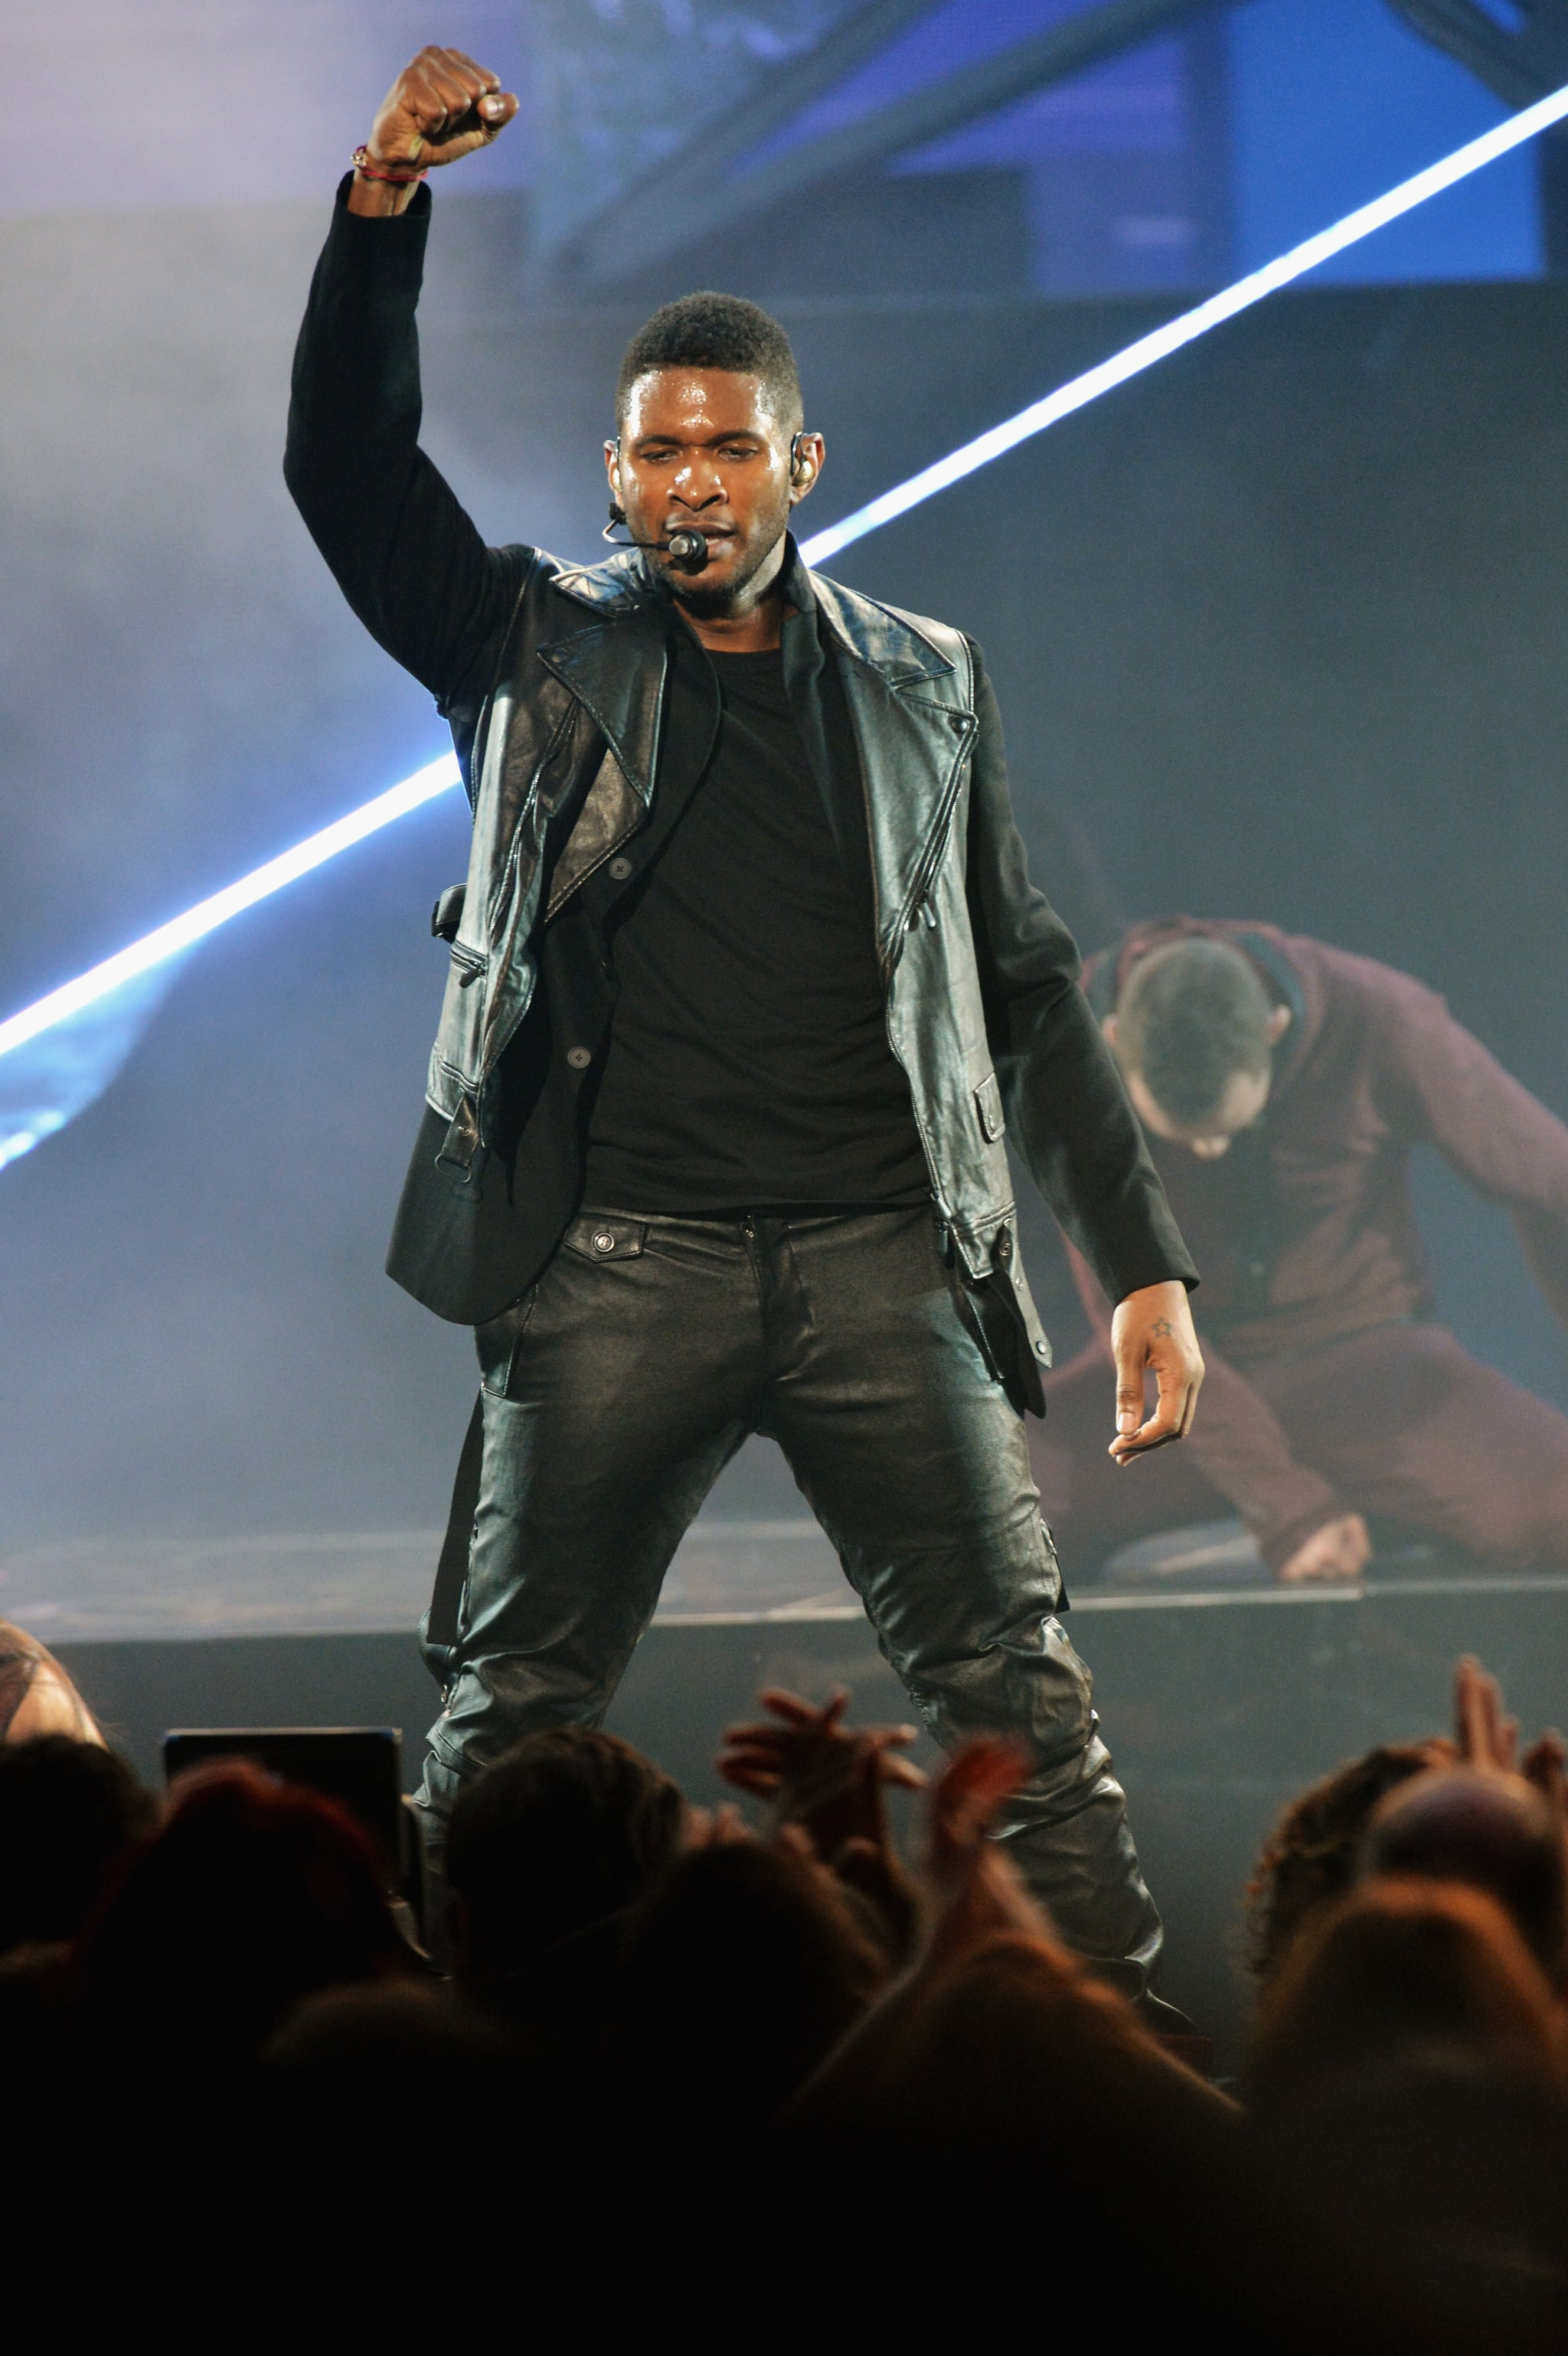 Usher wore black to perform at the awards in LA.